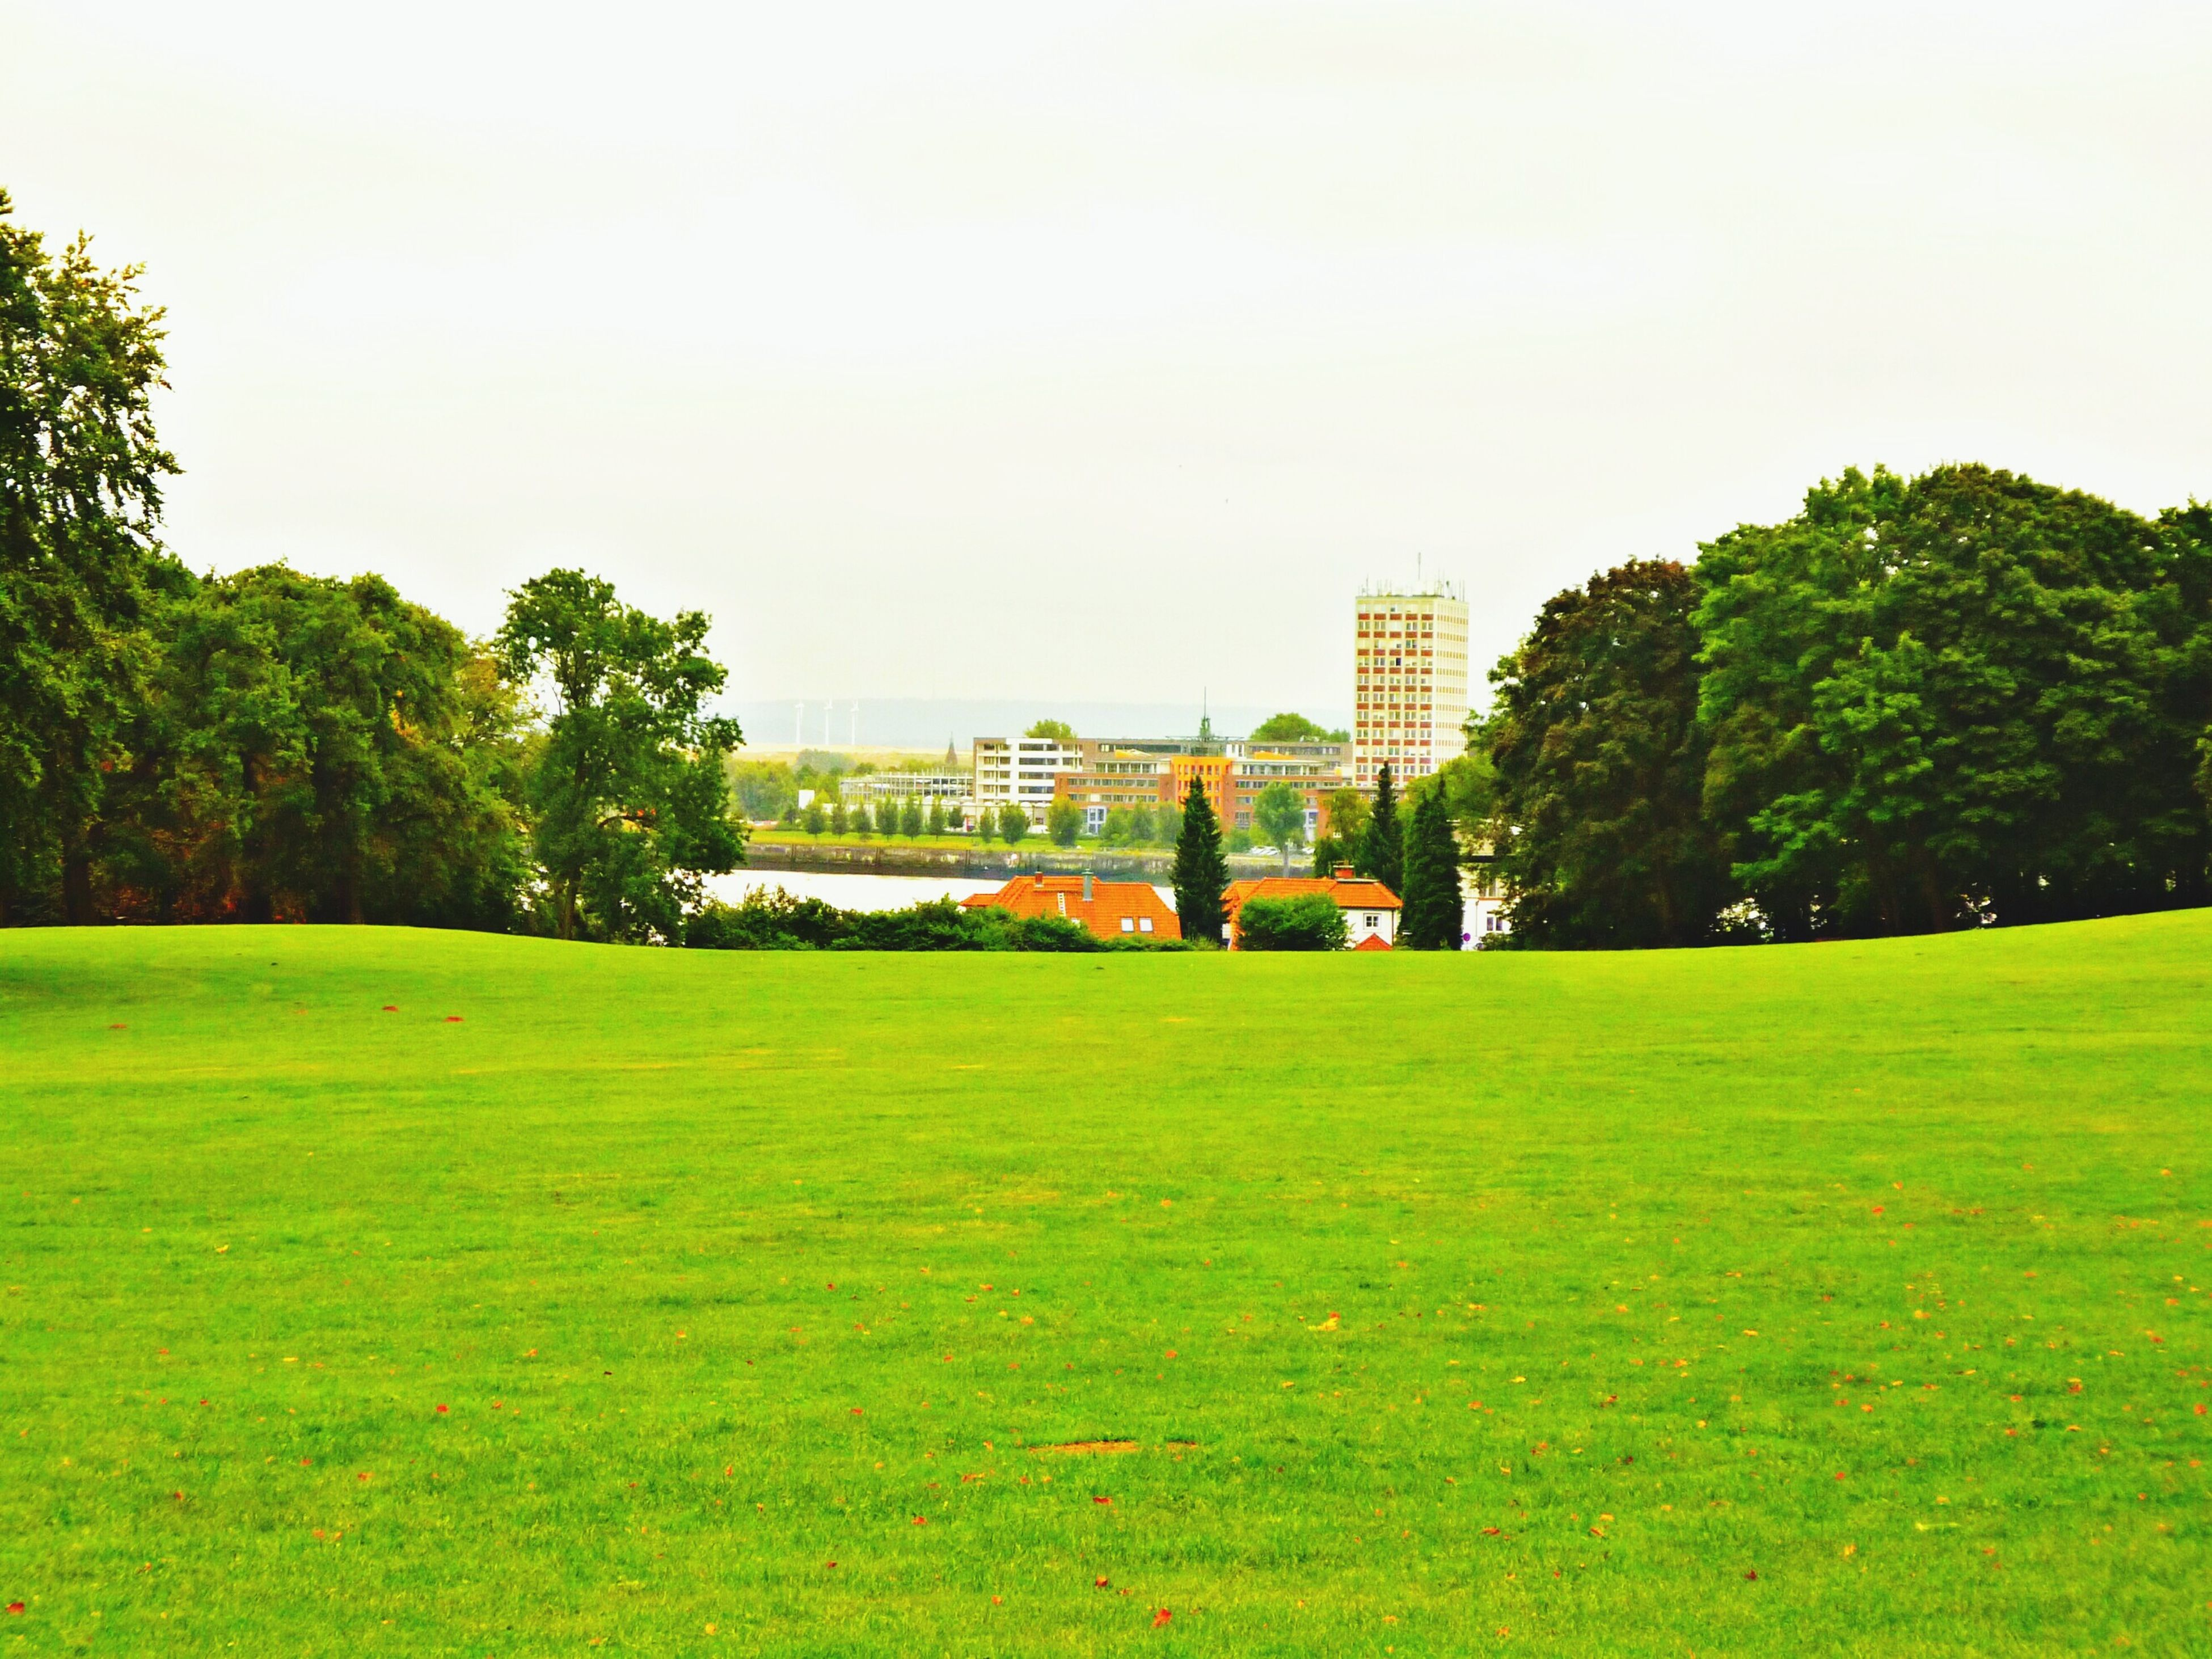 grass, architecture, building exterior, built structure, tree, green color, clear sky, lawn, grassy, copy space, growth, field, city, green, park - man made space, sky, grassland, day, nature, outdoors